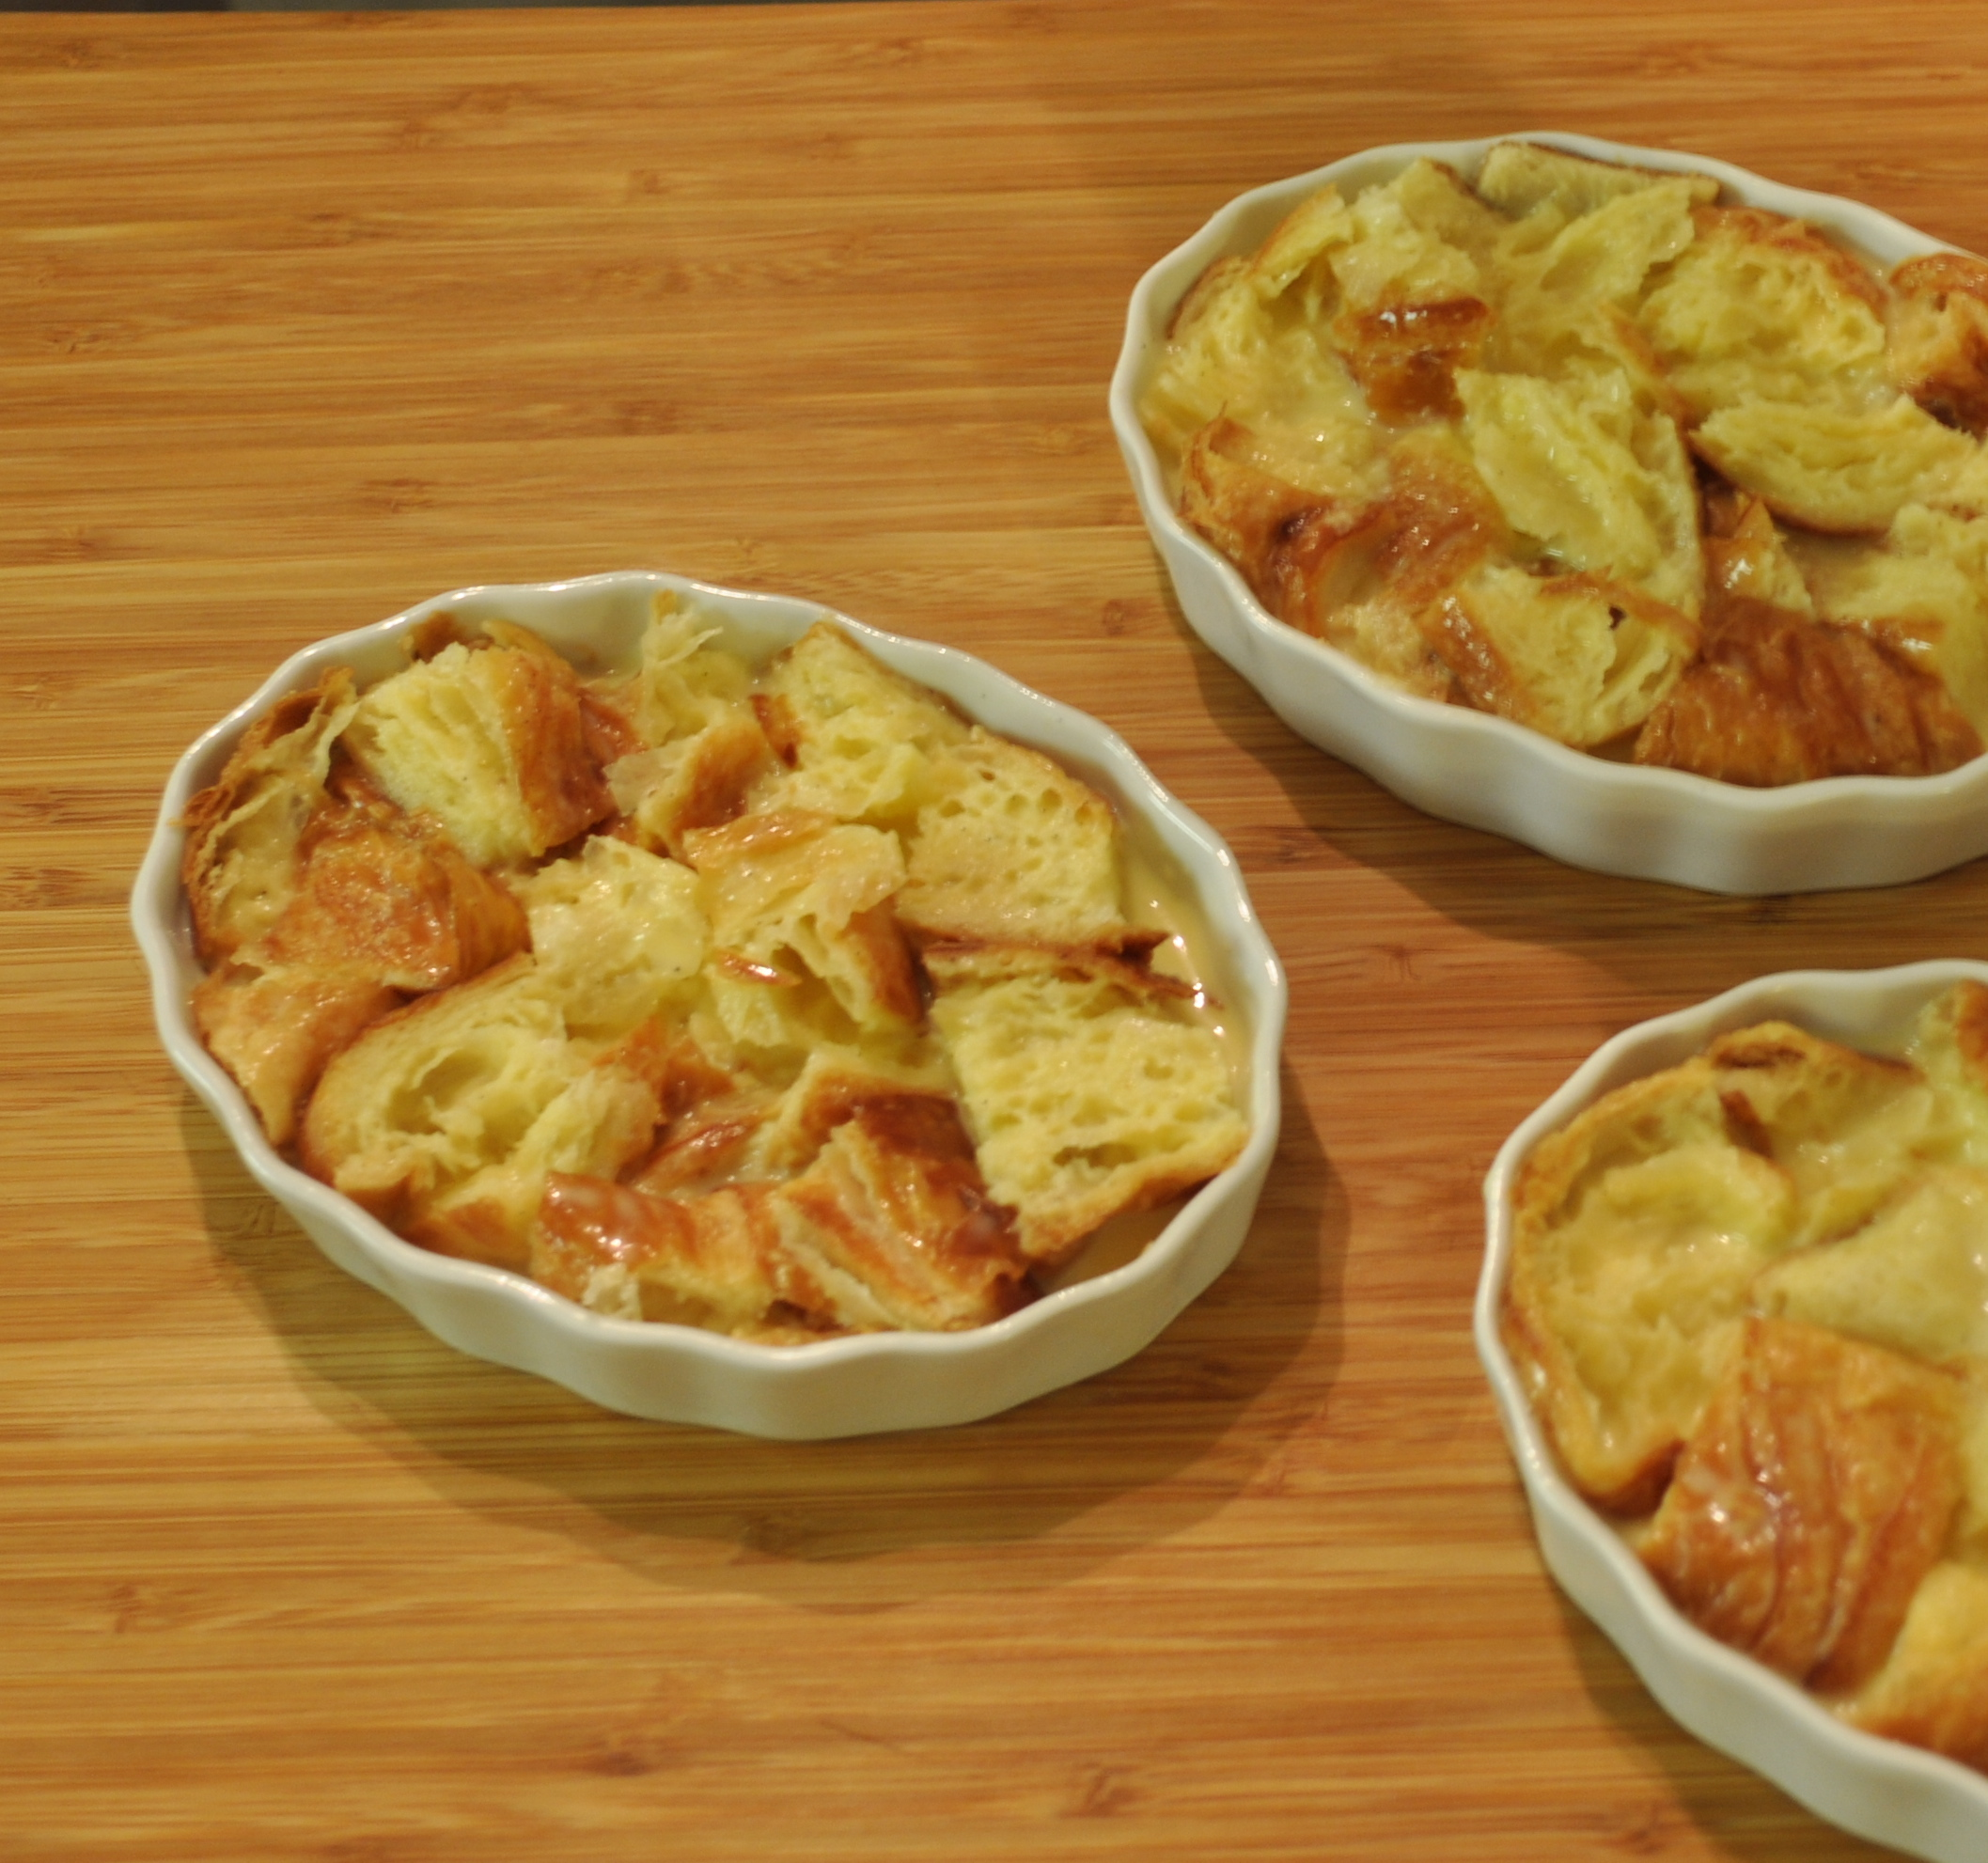 Creme Brulee Bread Pudding Custard After Baking These Darling Little Bread Puddings